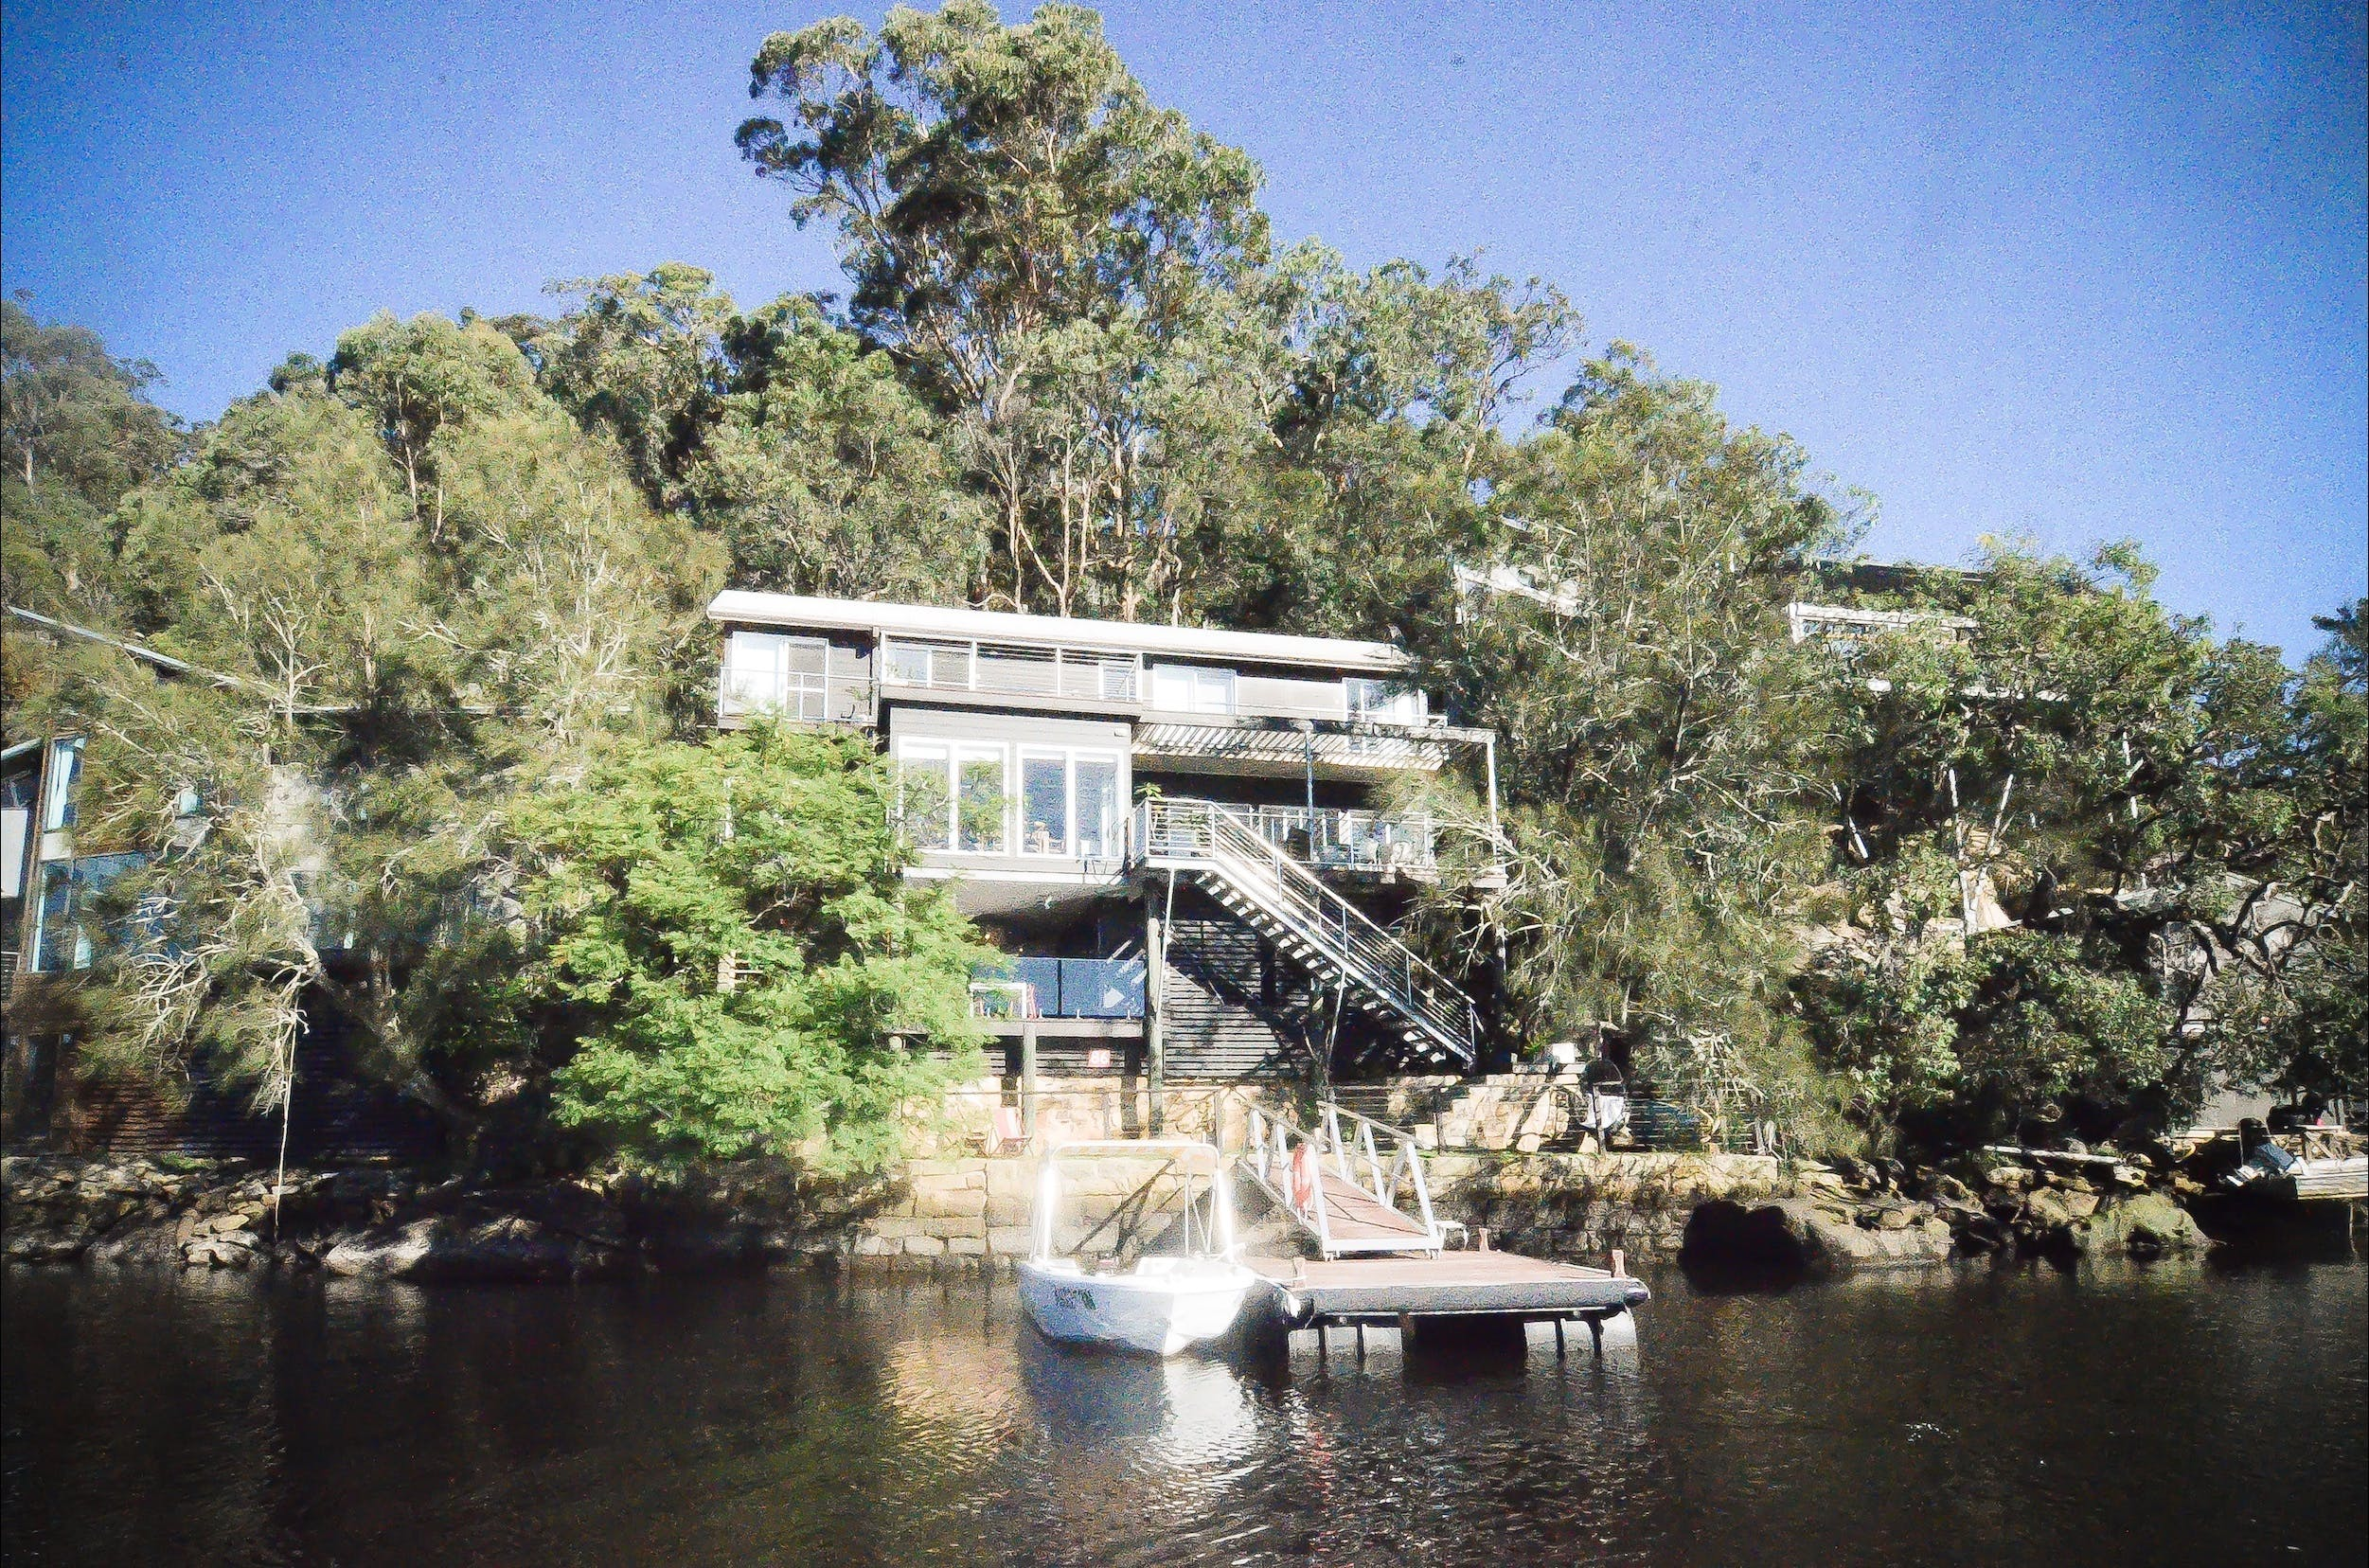 Calabash Bay Lodge - Accommodation Coffs Harbour